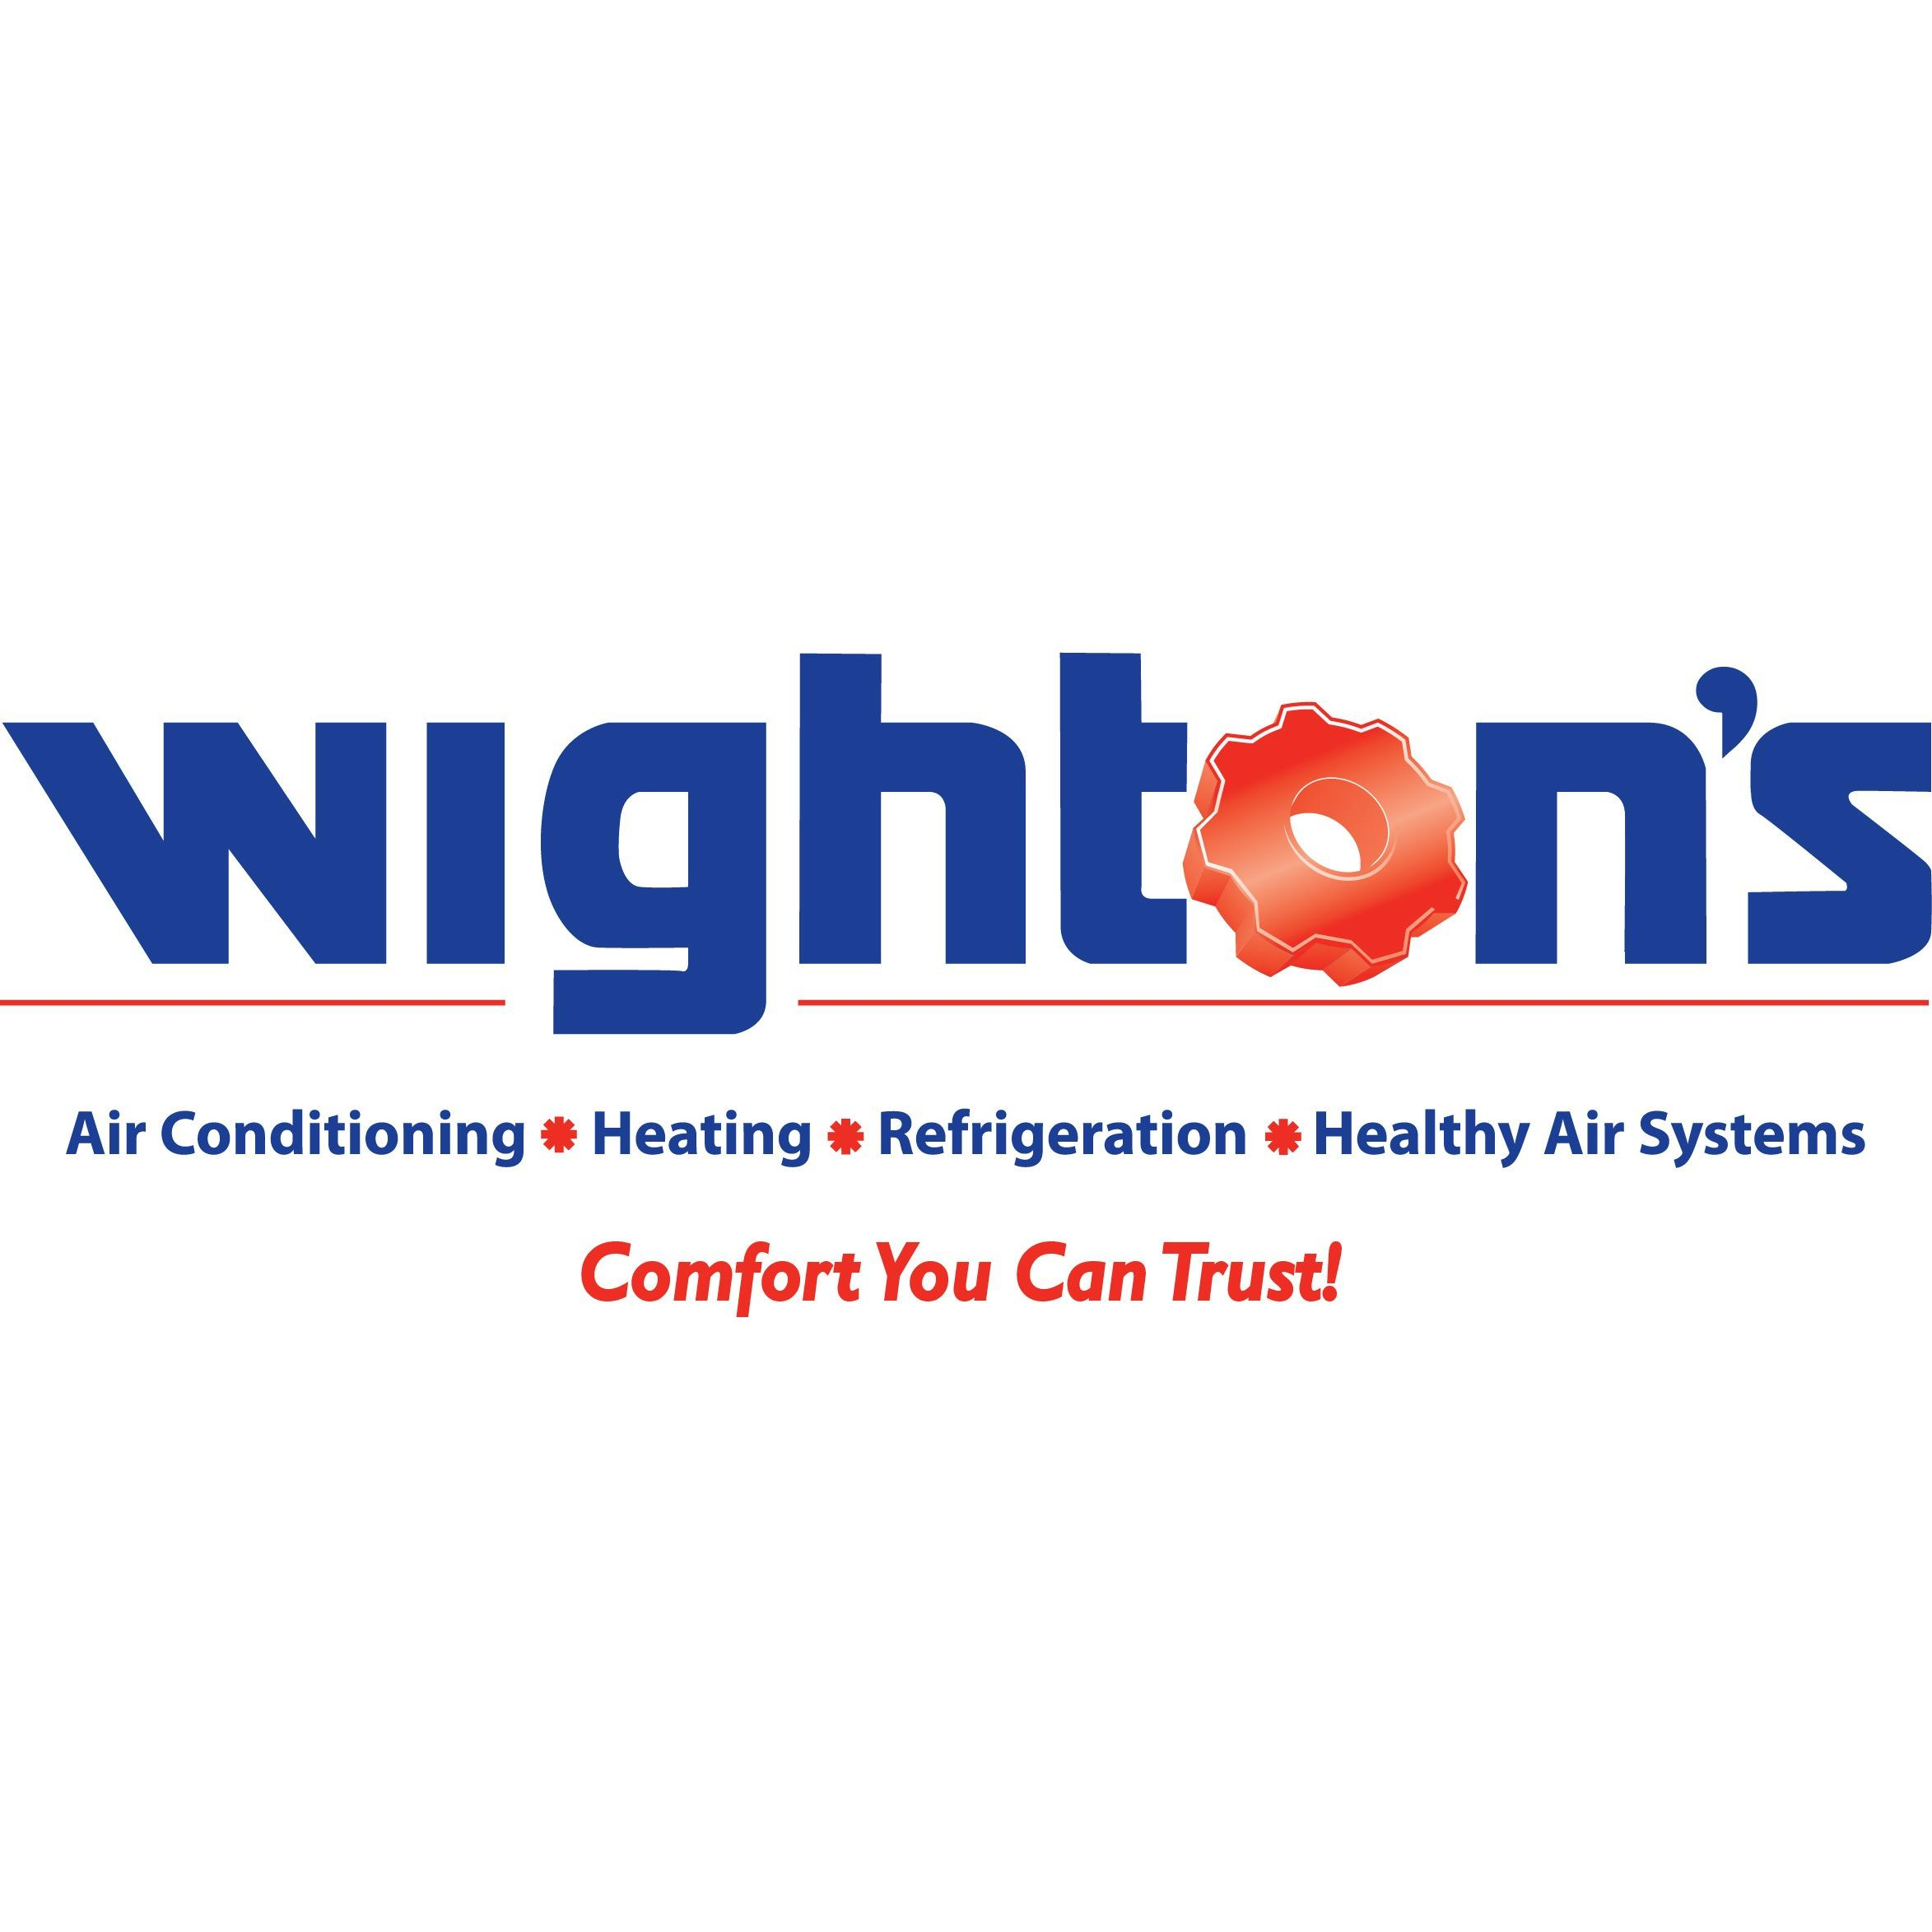 Wighton's Heating & Air Conditioning